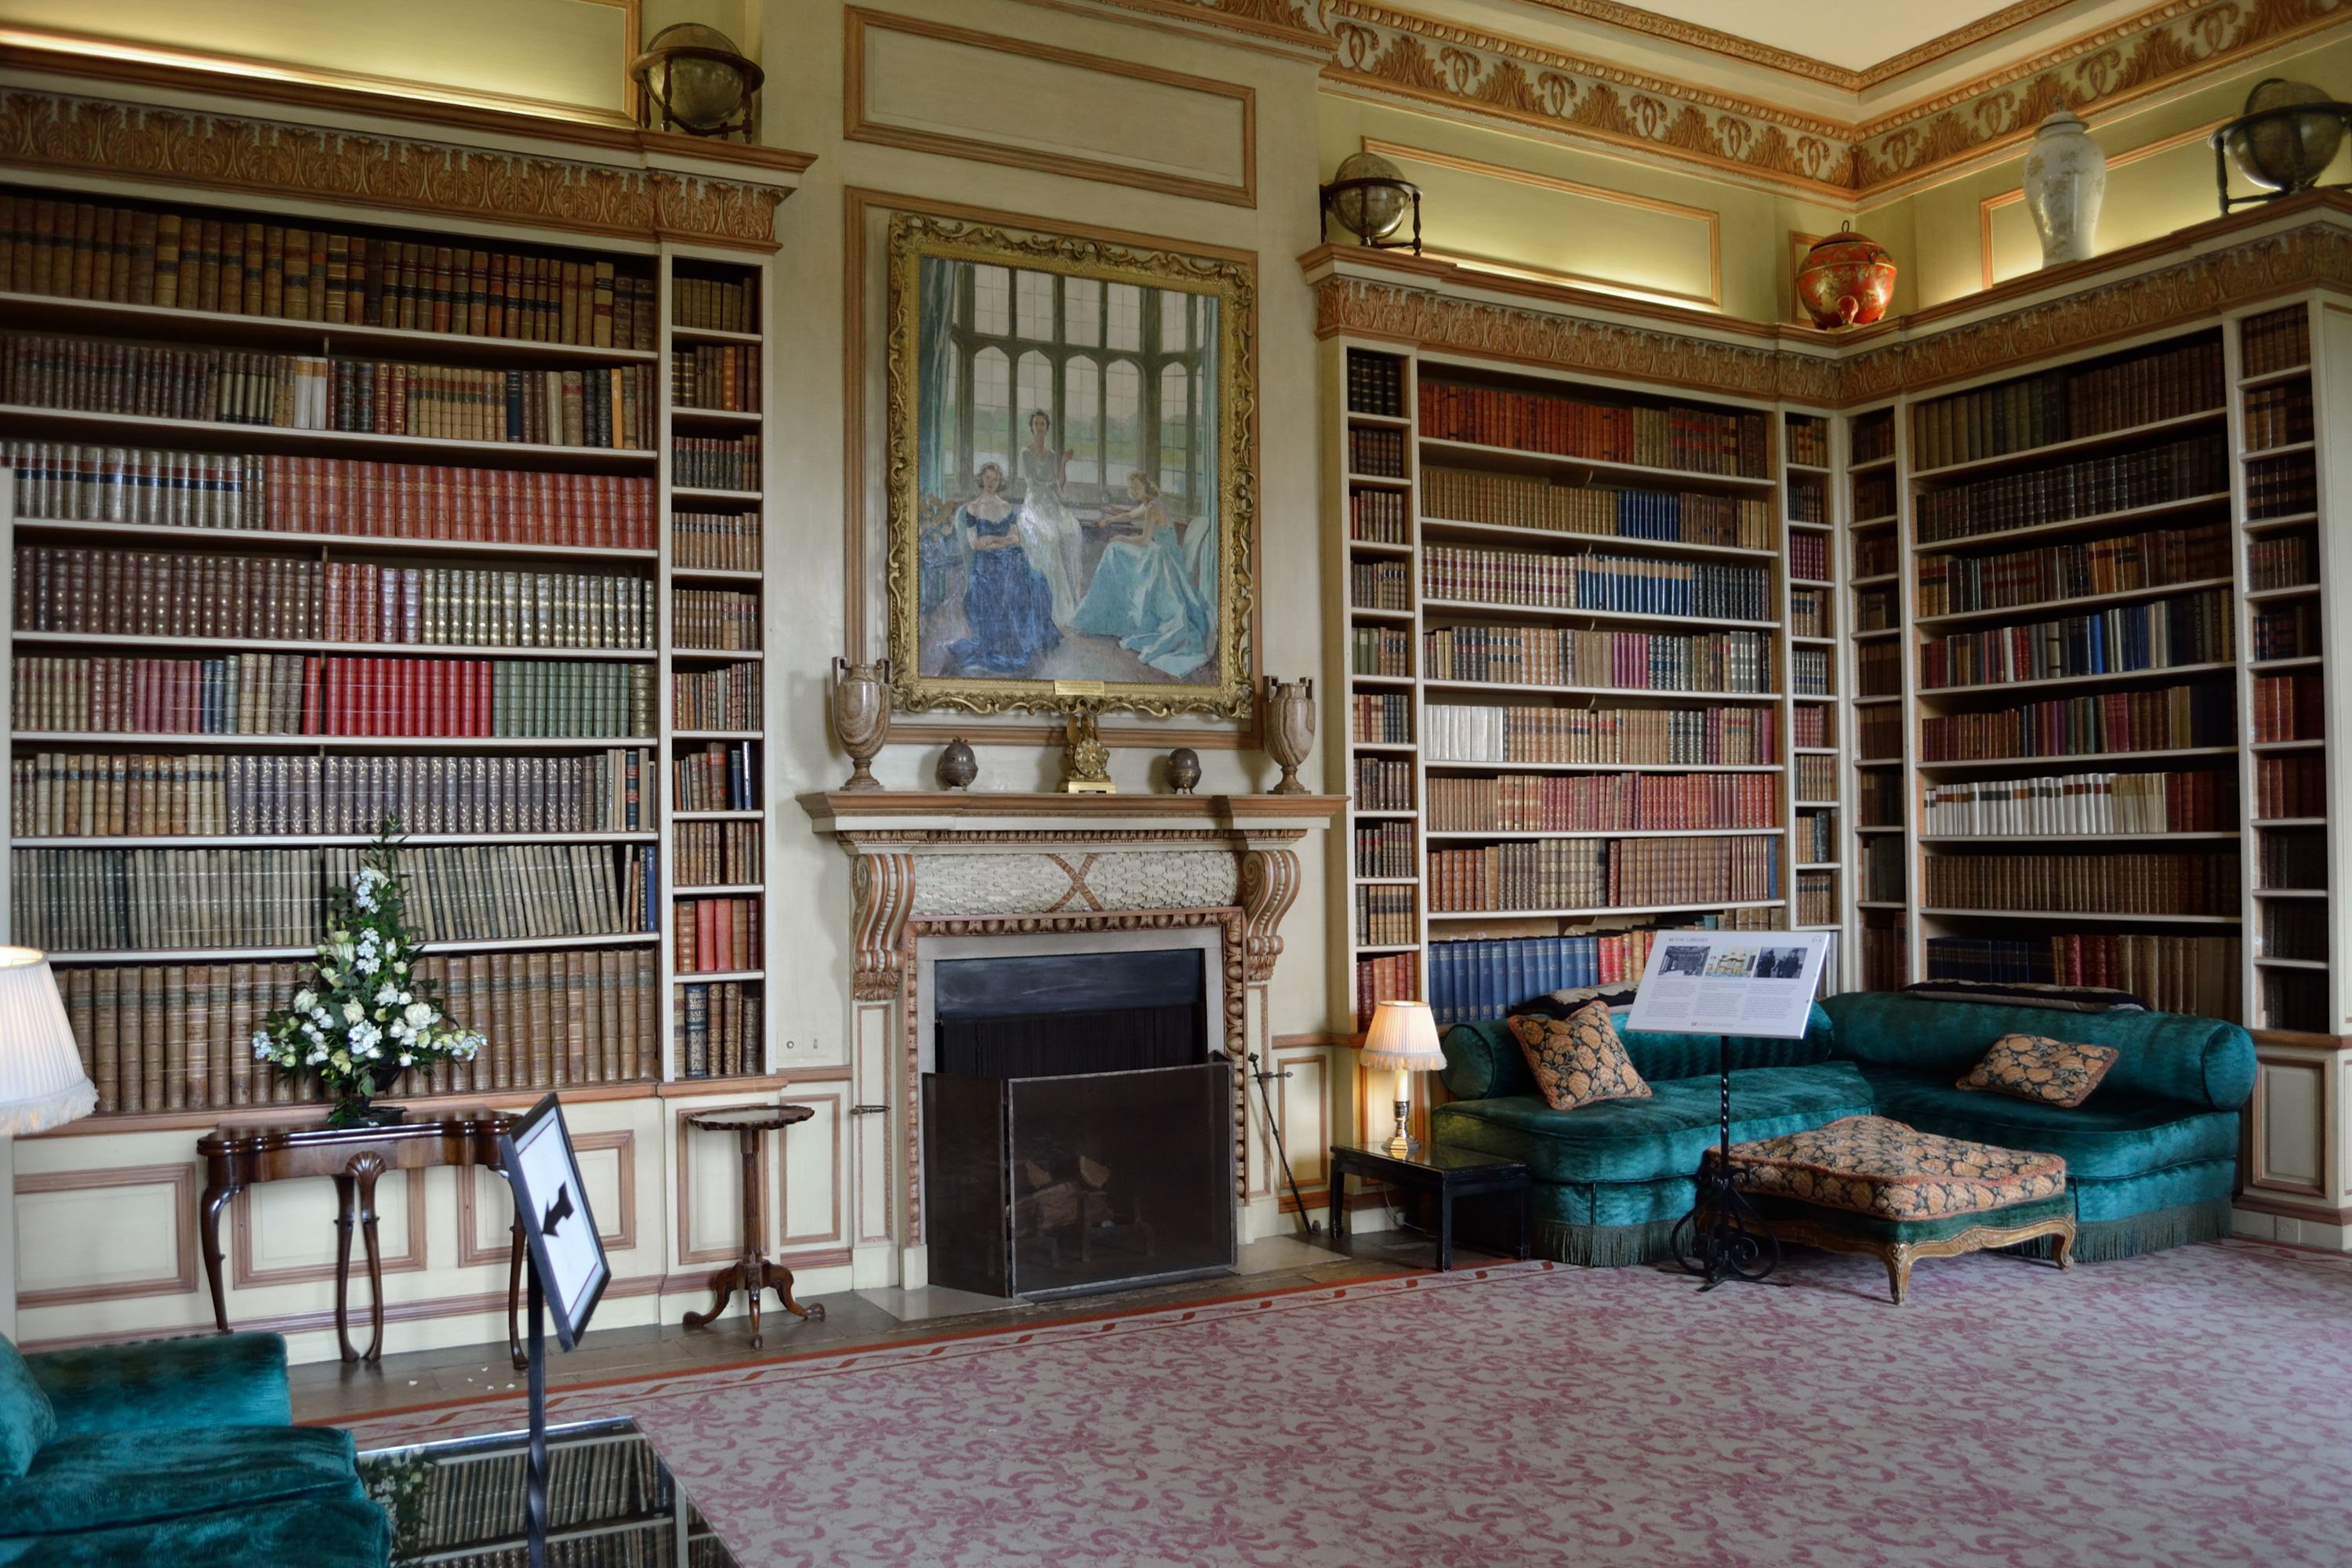 Library at Leeds Castle